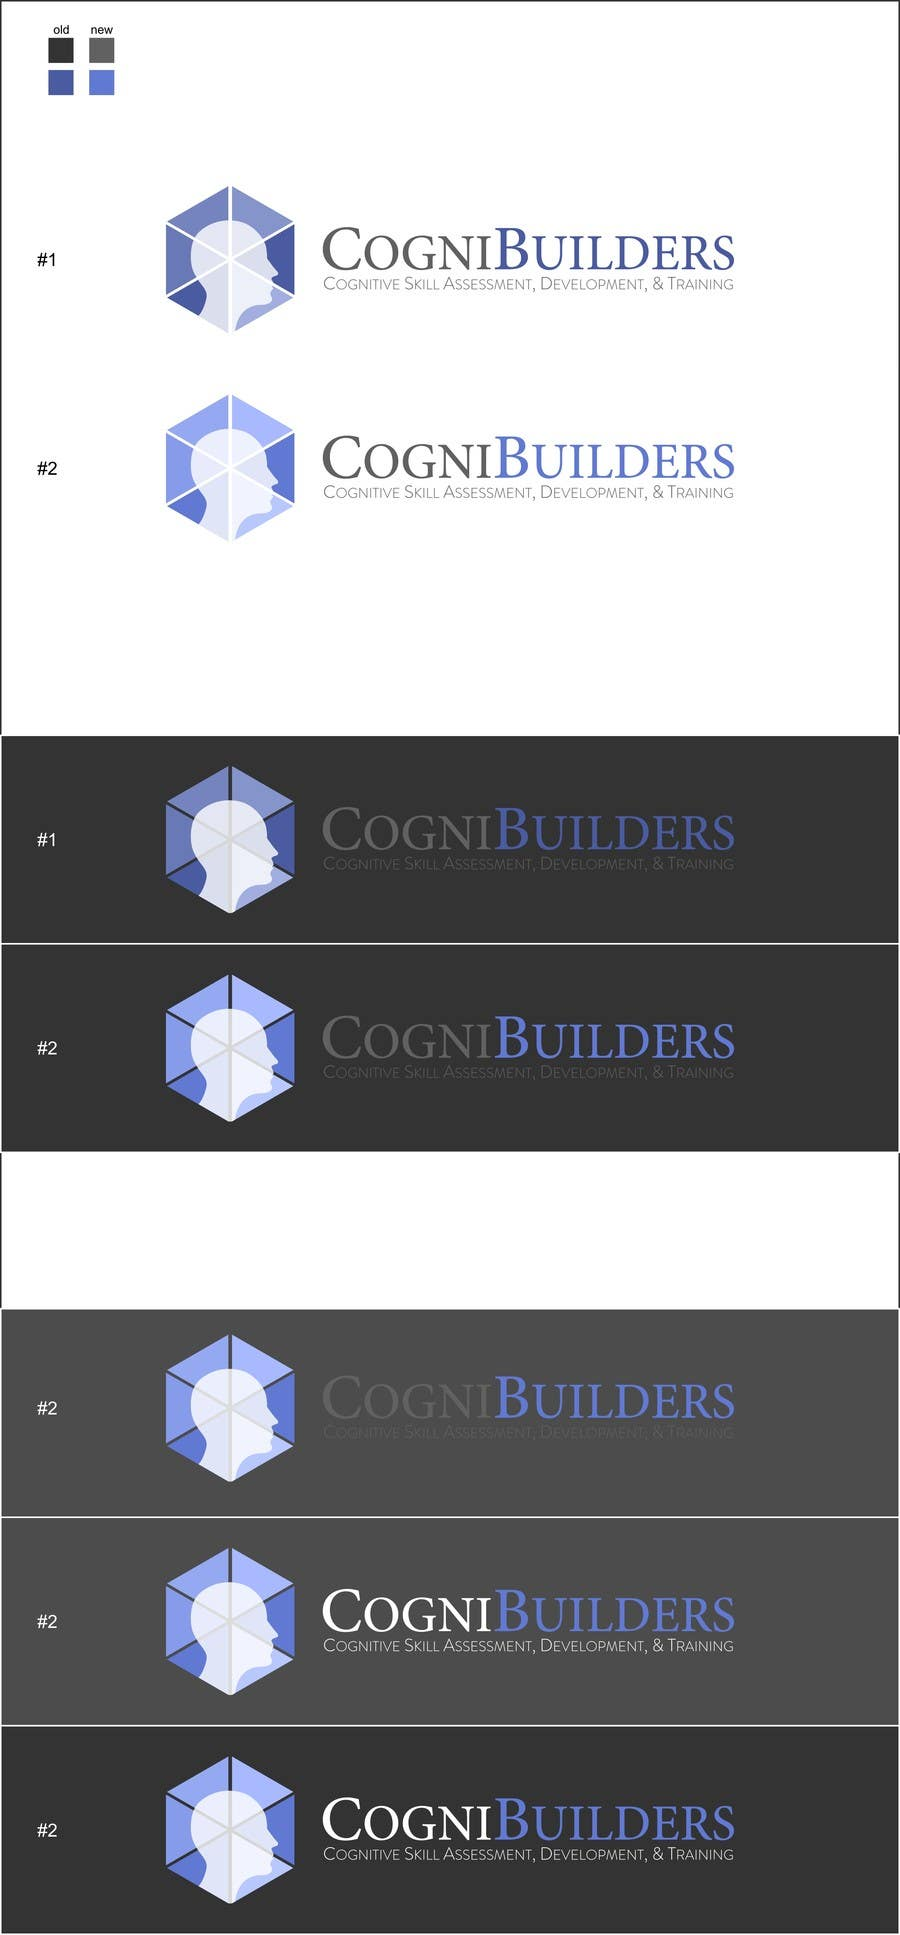 Contest Entry #90 for Design a Logo for Cognibuilders